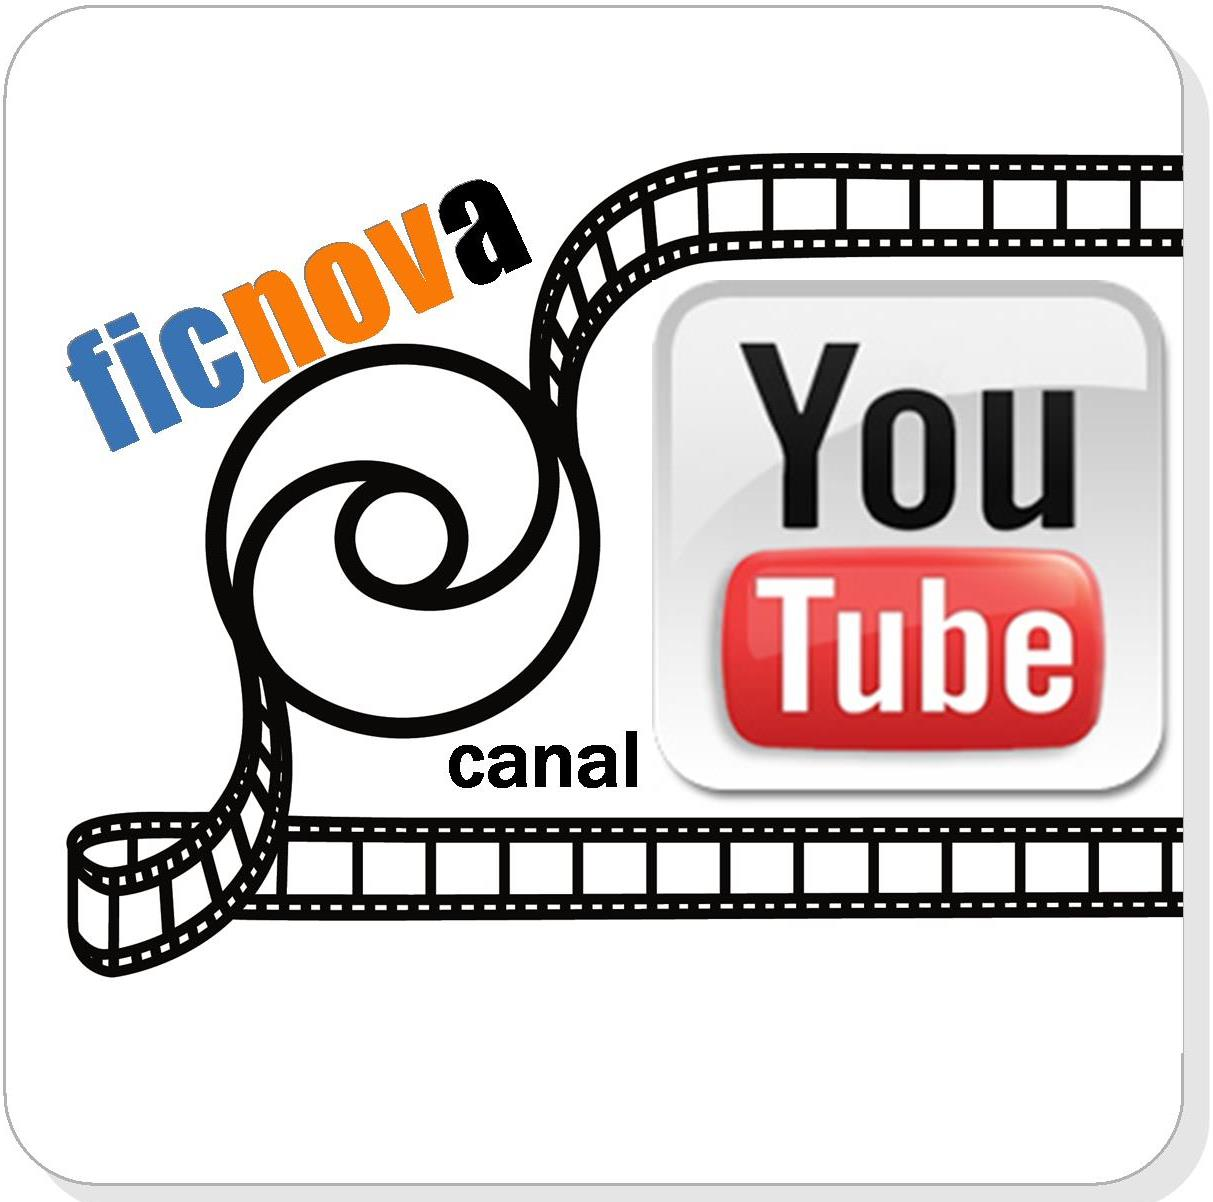 canal youtube ficnova